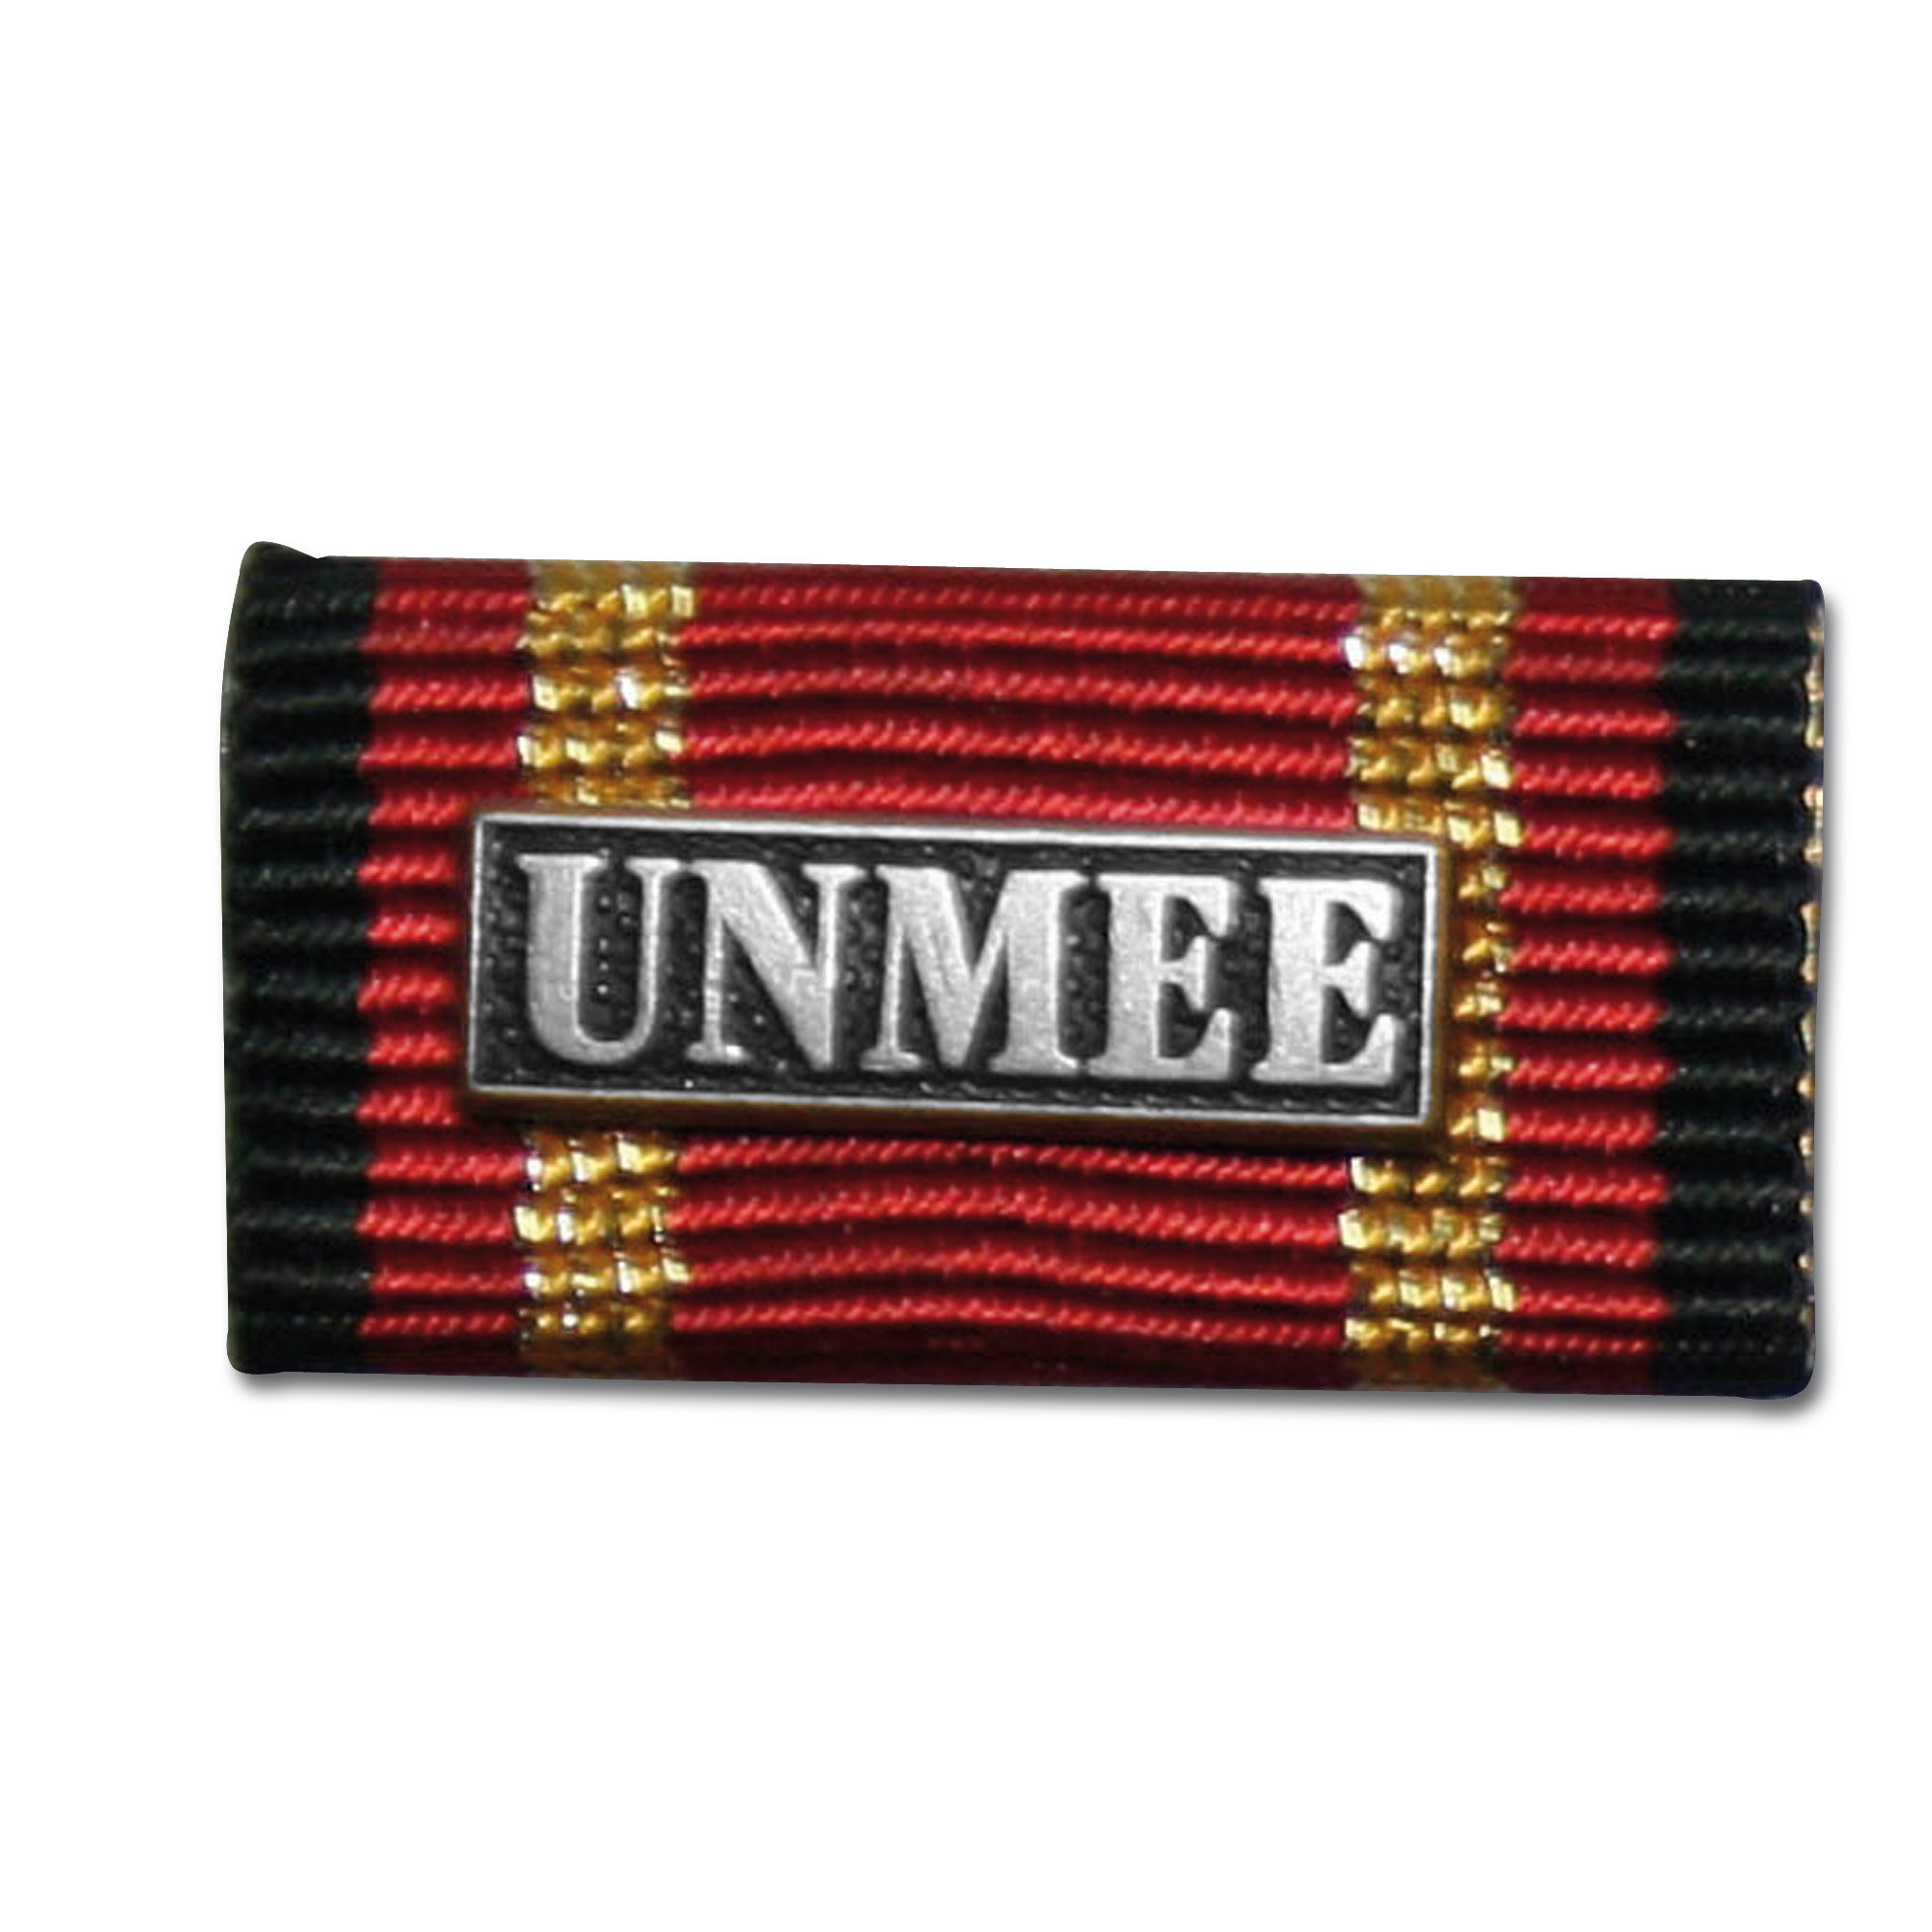 Service Ribbon Deployment Operation UNMEE silver